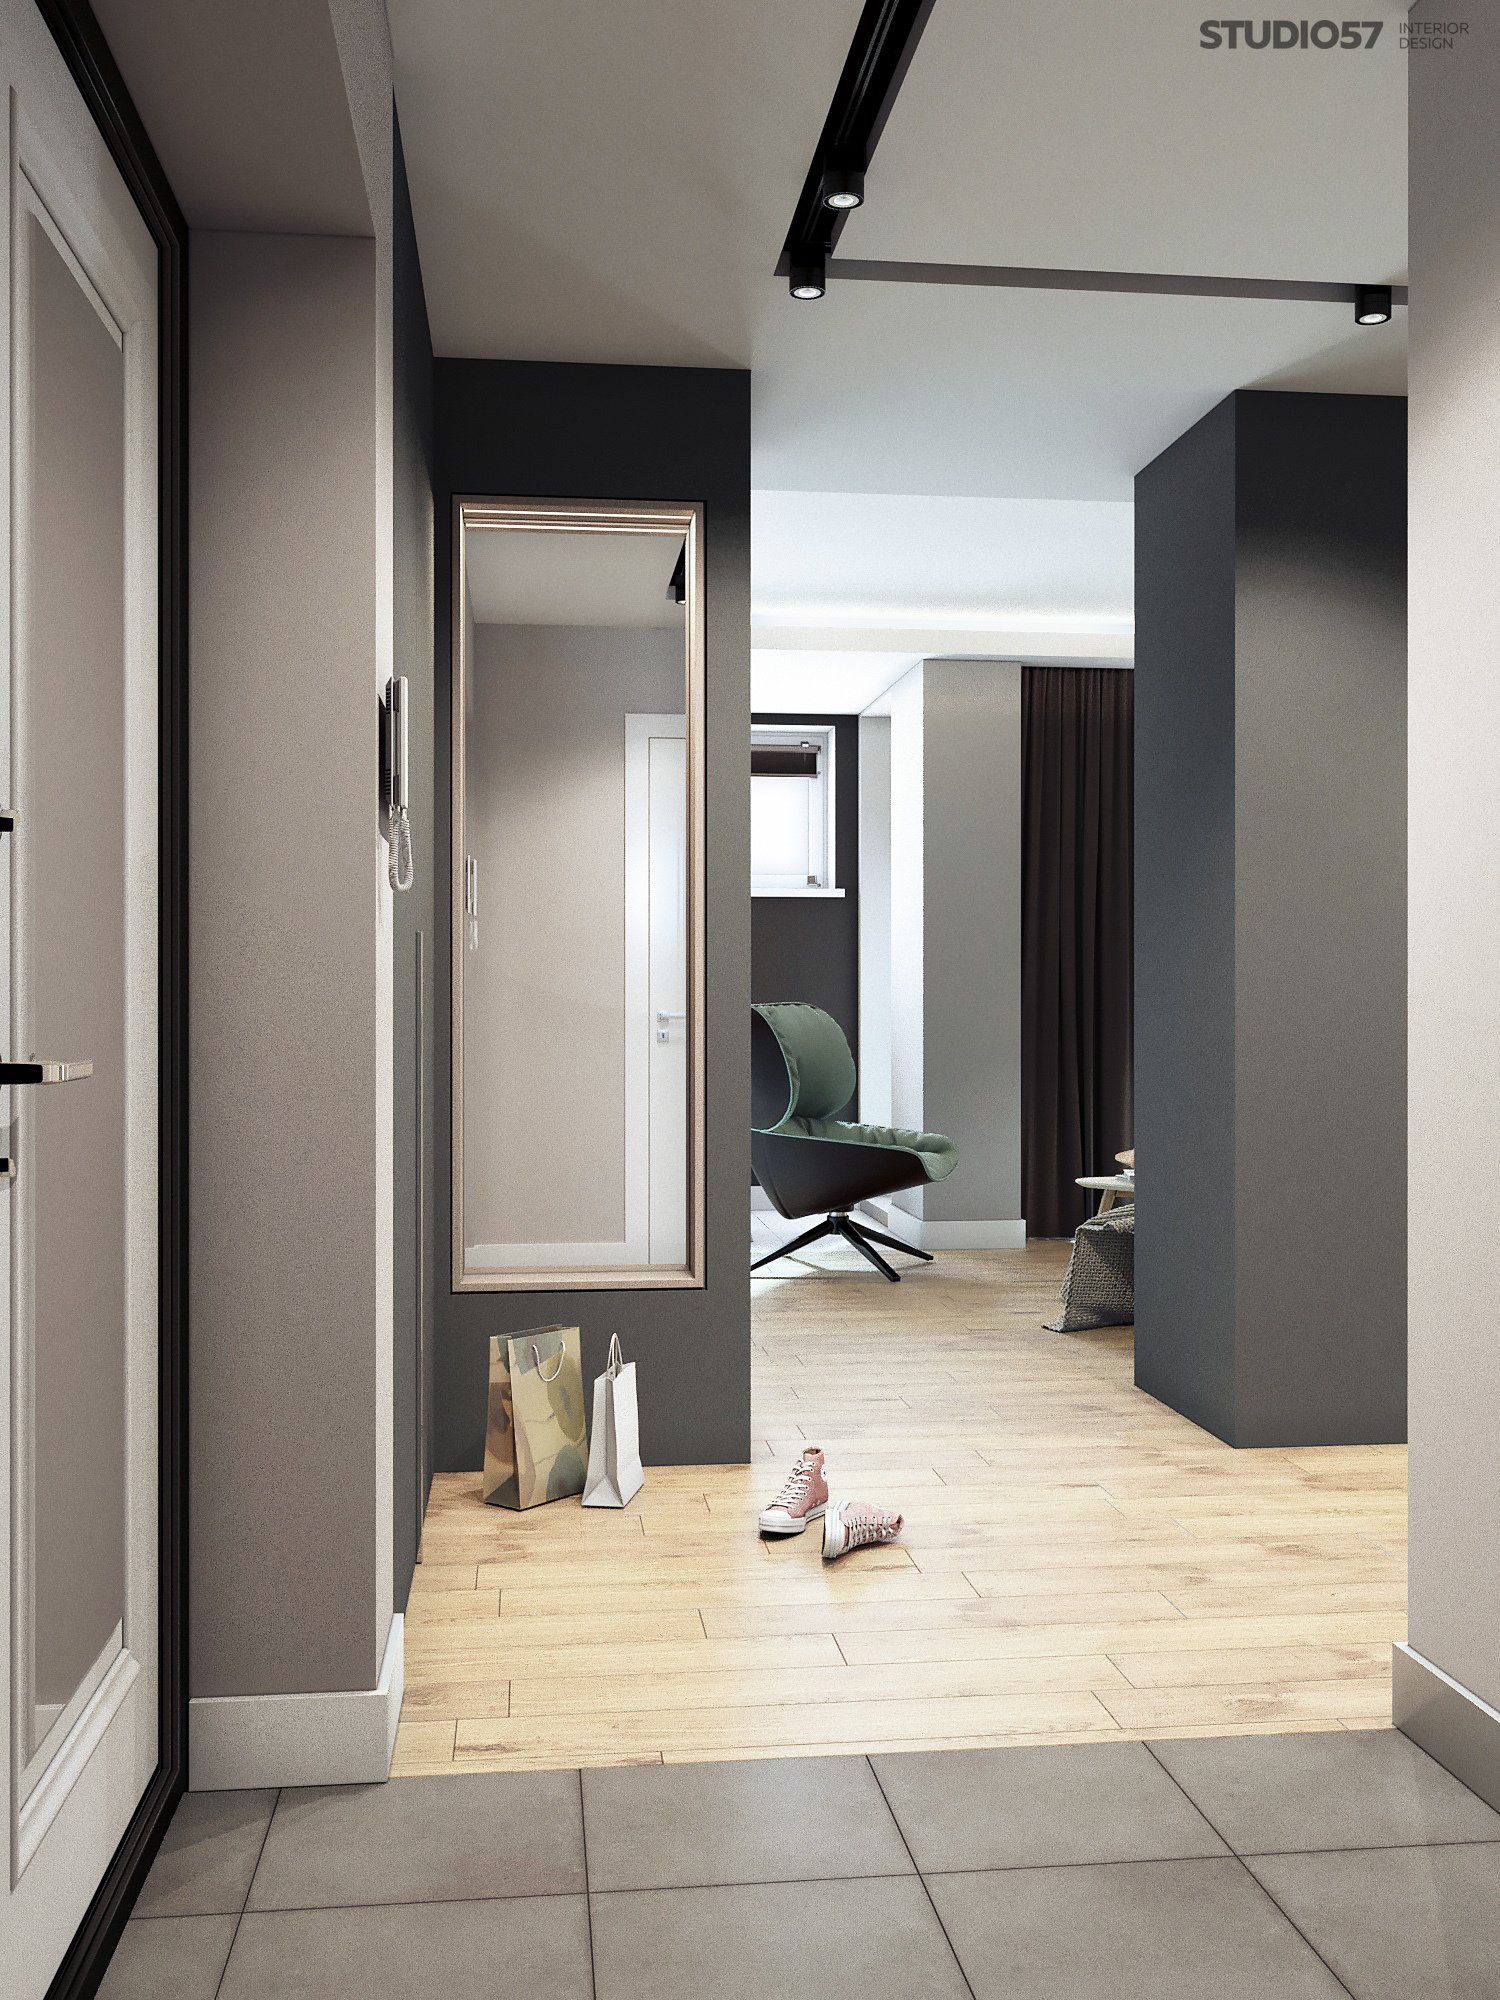 Photo of the hallway interior in gray shades